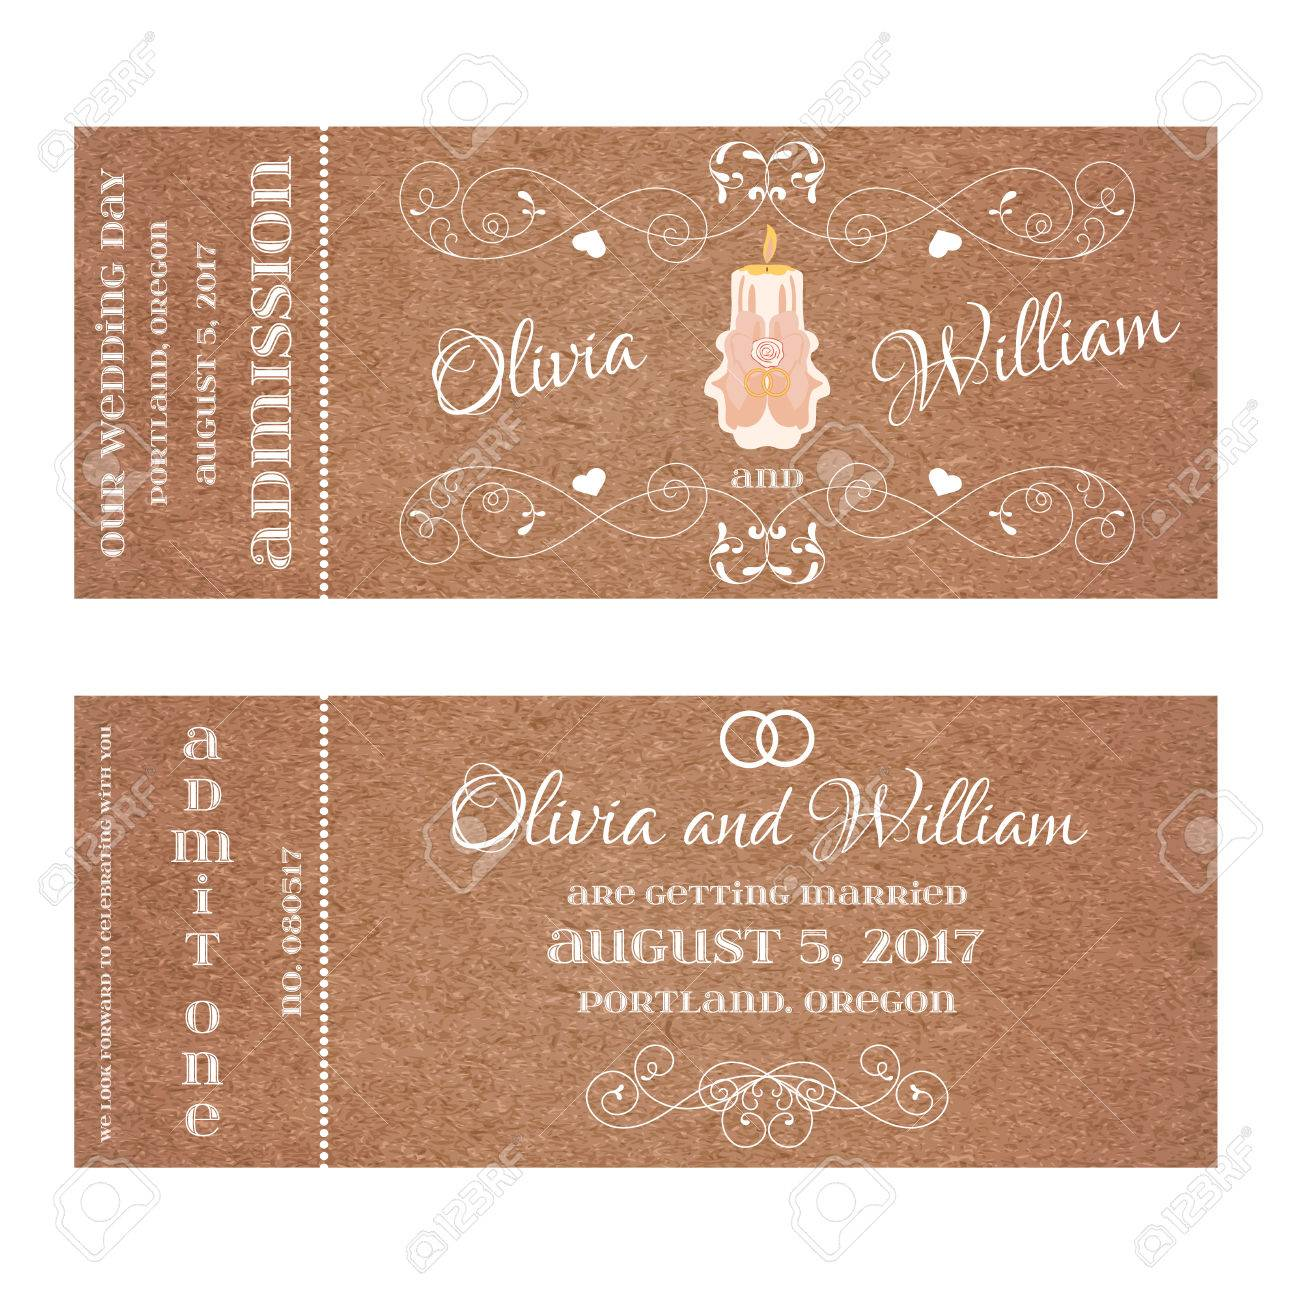 Grunge Double Sided Ticket For Wedding Invitation And Save The